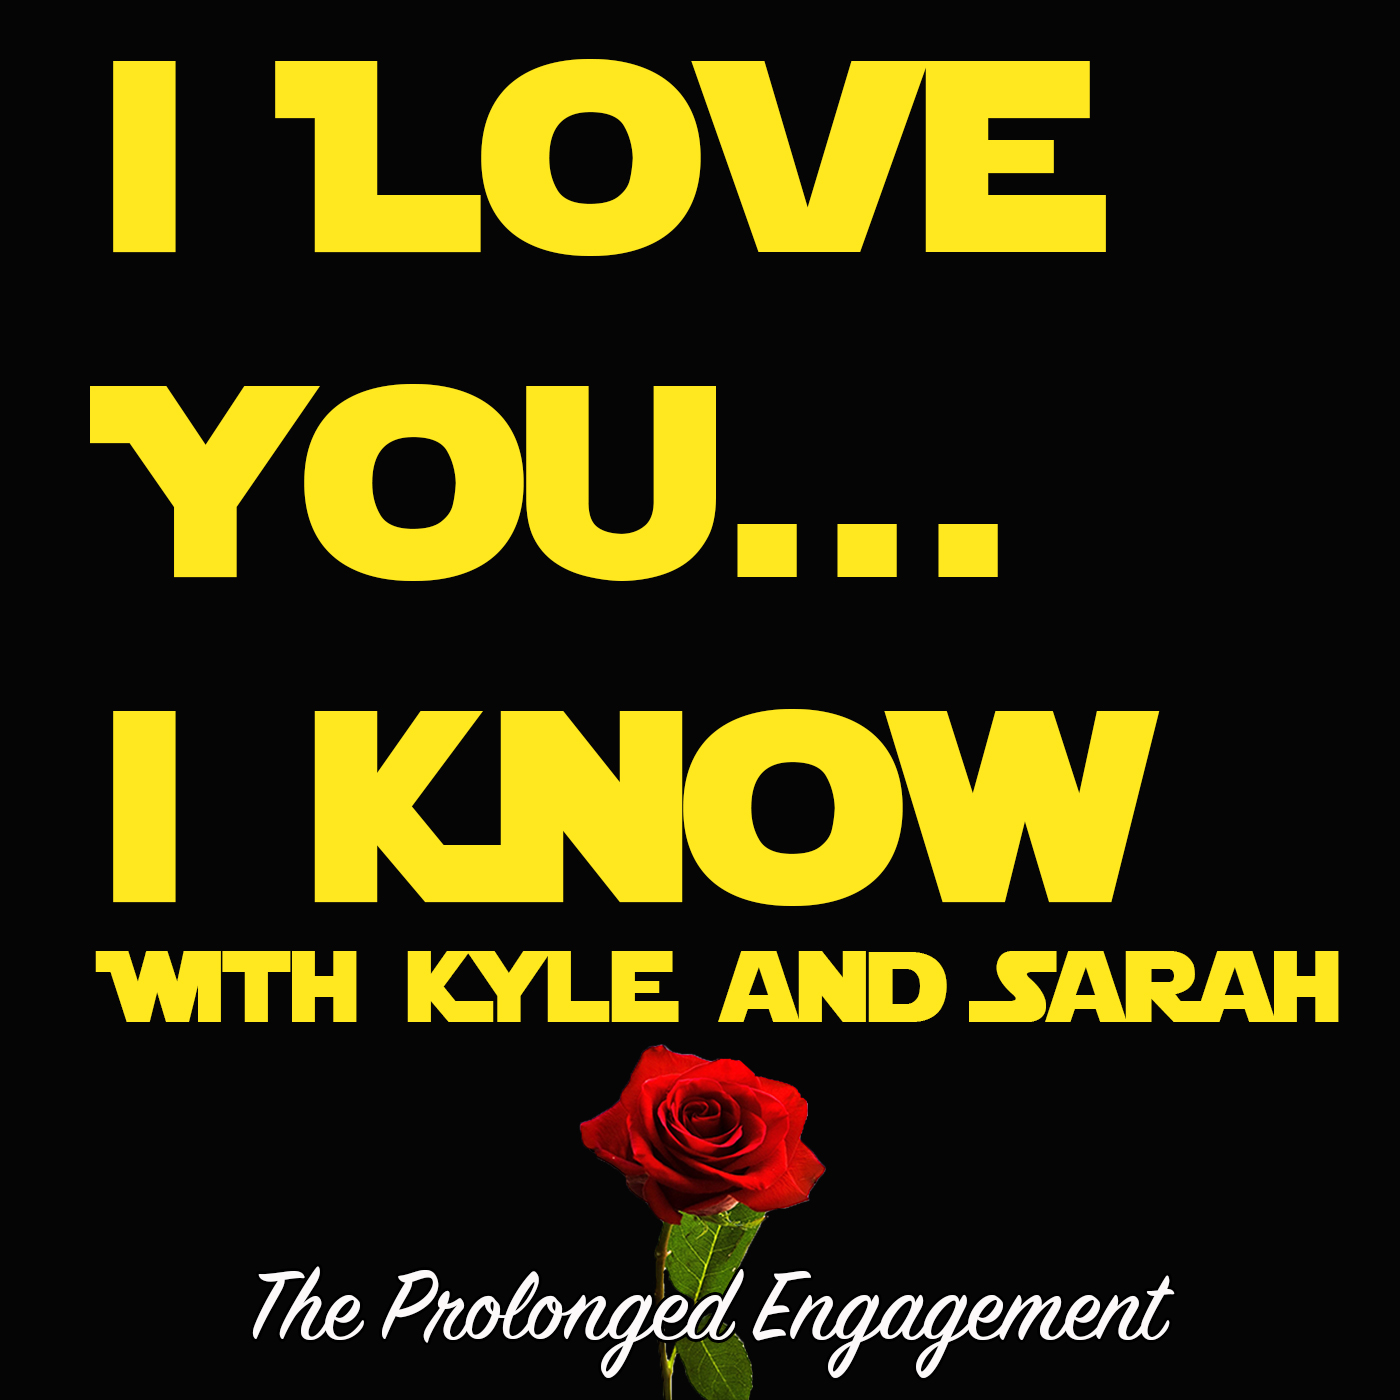 I Love You... I Know with Kyle and Sarah